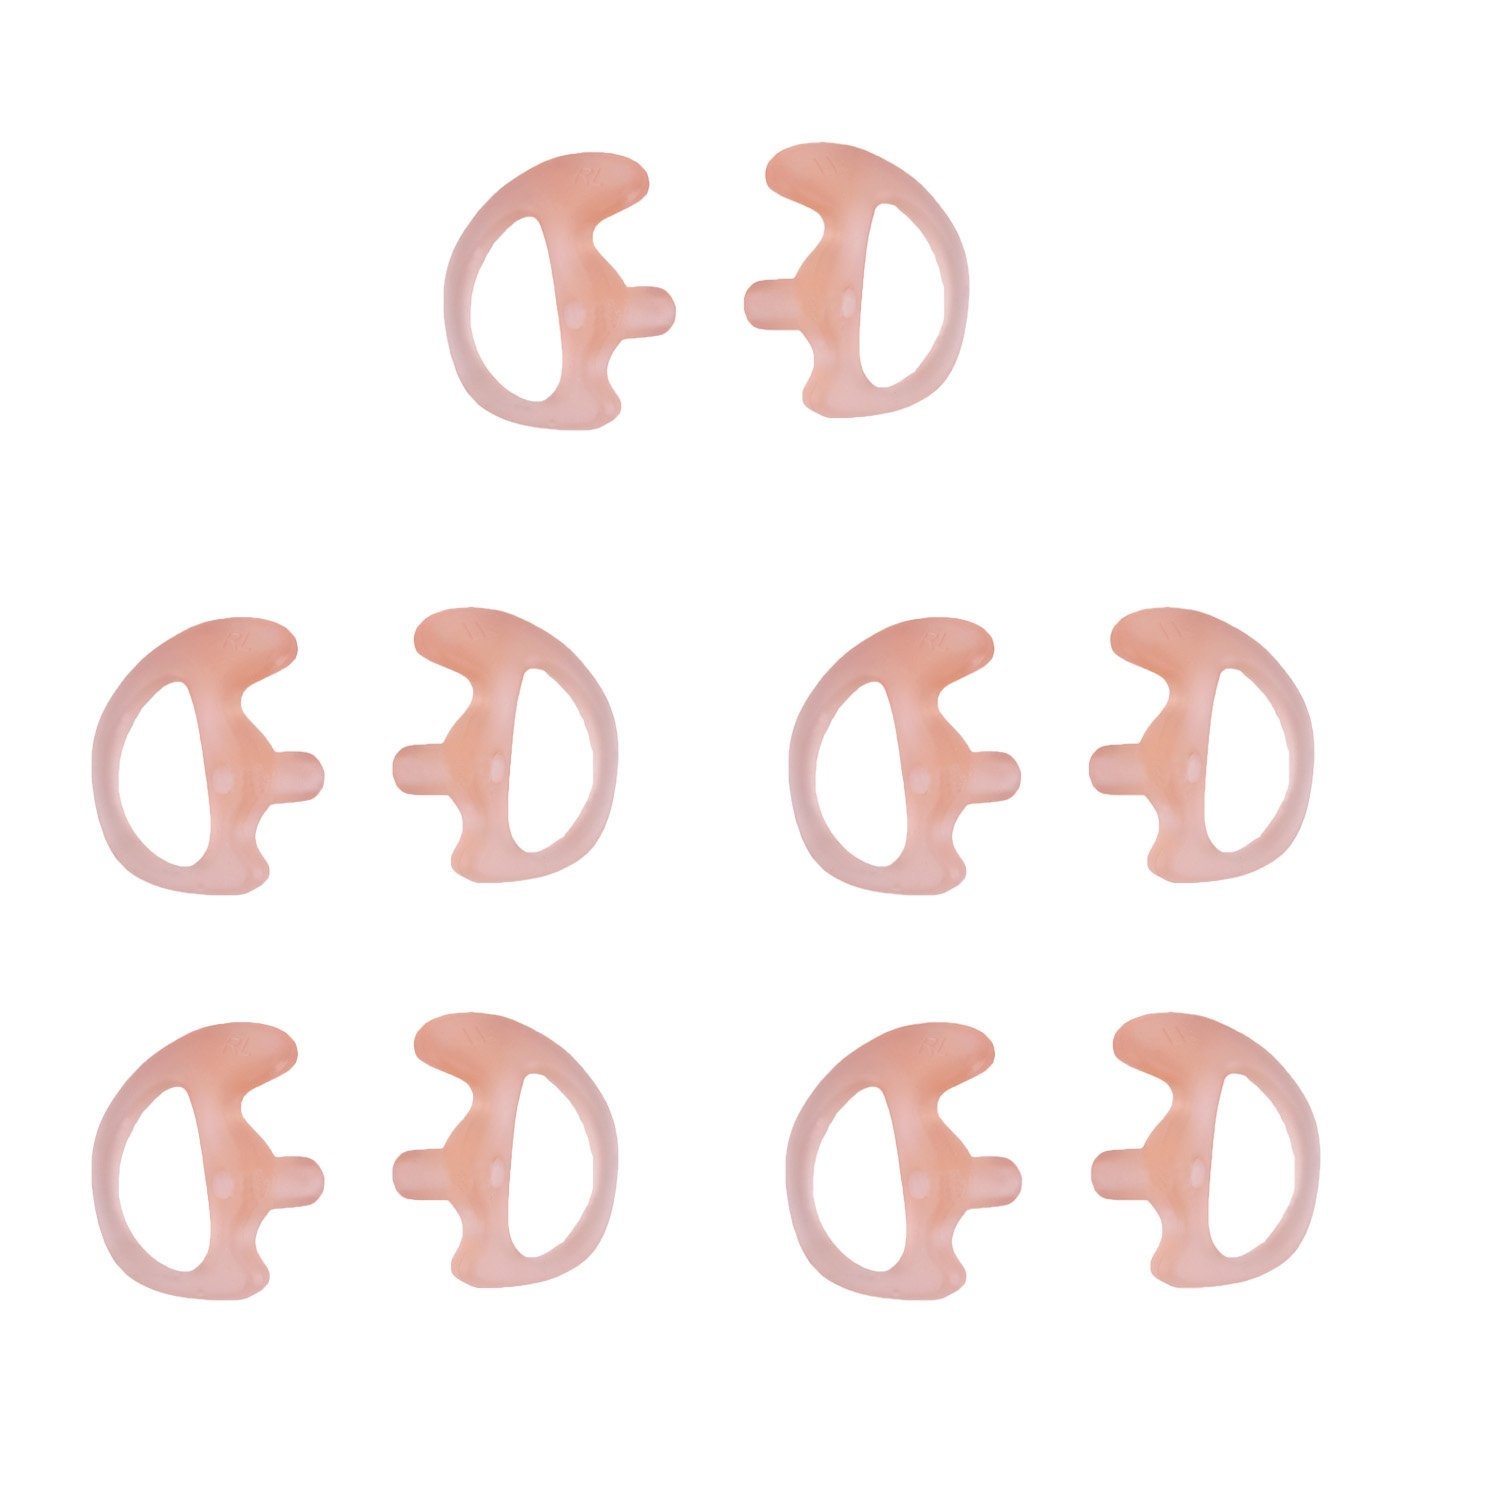 KS K-STORM Two Way Radio Ear Mold Replacement Soft Silicone Ear Insert Earmould for Acoustic Coil Tube Earbud (Carnation, 5 Pair Small)